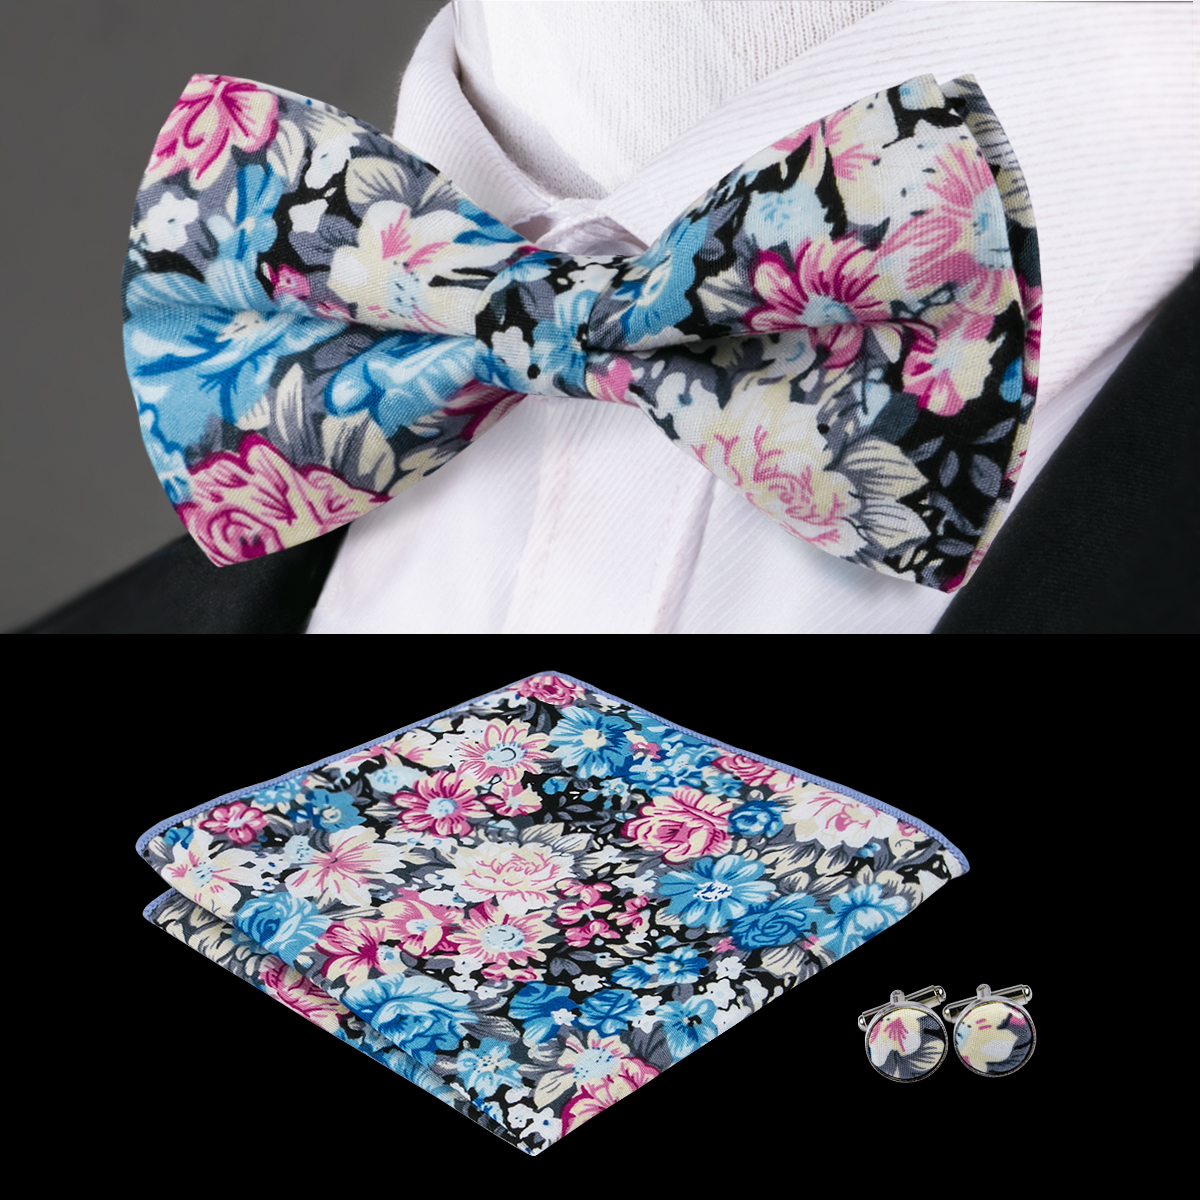 0f7ba75a3f36 F-678 Hi-Tie Floral Bow Tie Set Fashion Bowtie Pocket Square Cufflinks  Print Cotton Bow Ties For Men Butterfly Self Bow Tie